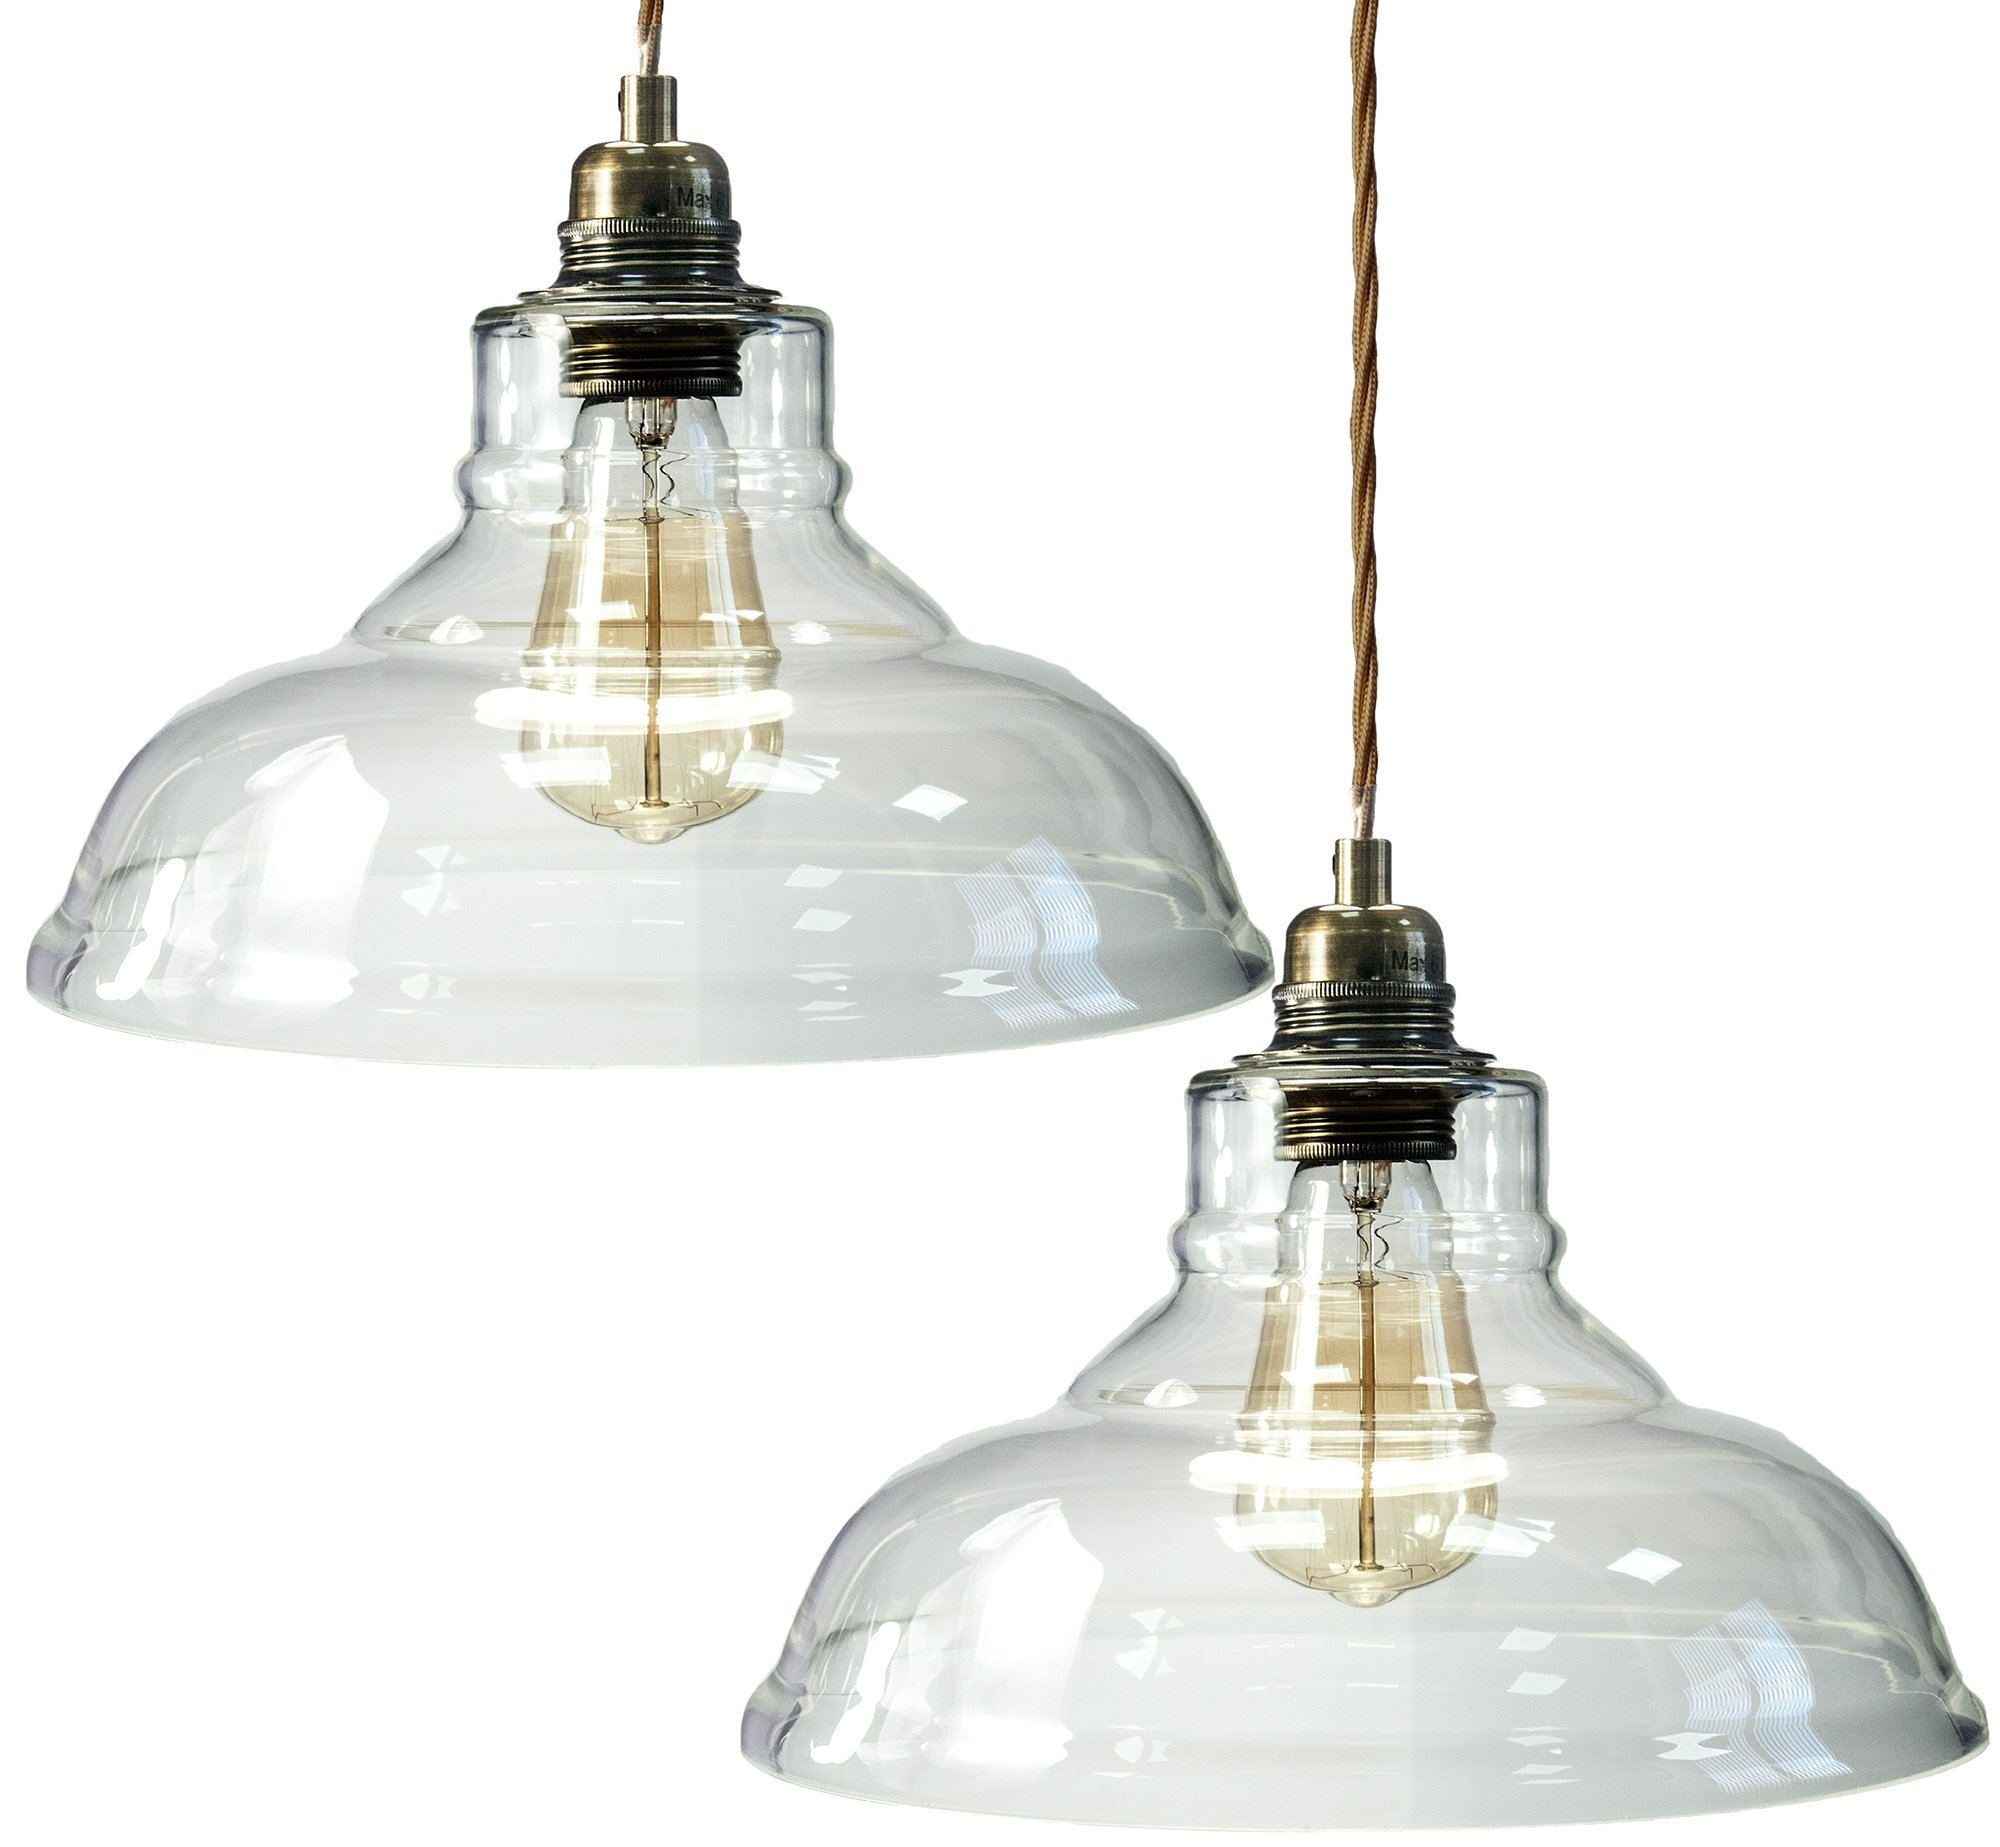 glass chandelier shades. Pack Of 2 Modern Vintage Glass Chandelier Shade Pendant Hanging Ceiling Light E27 - Clear Shades A